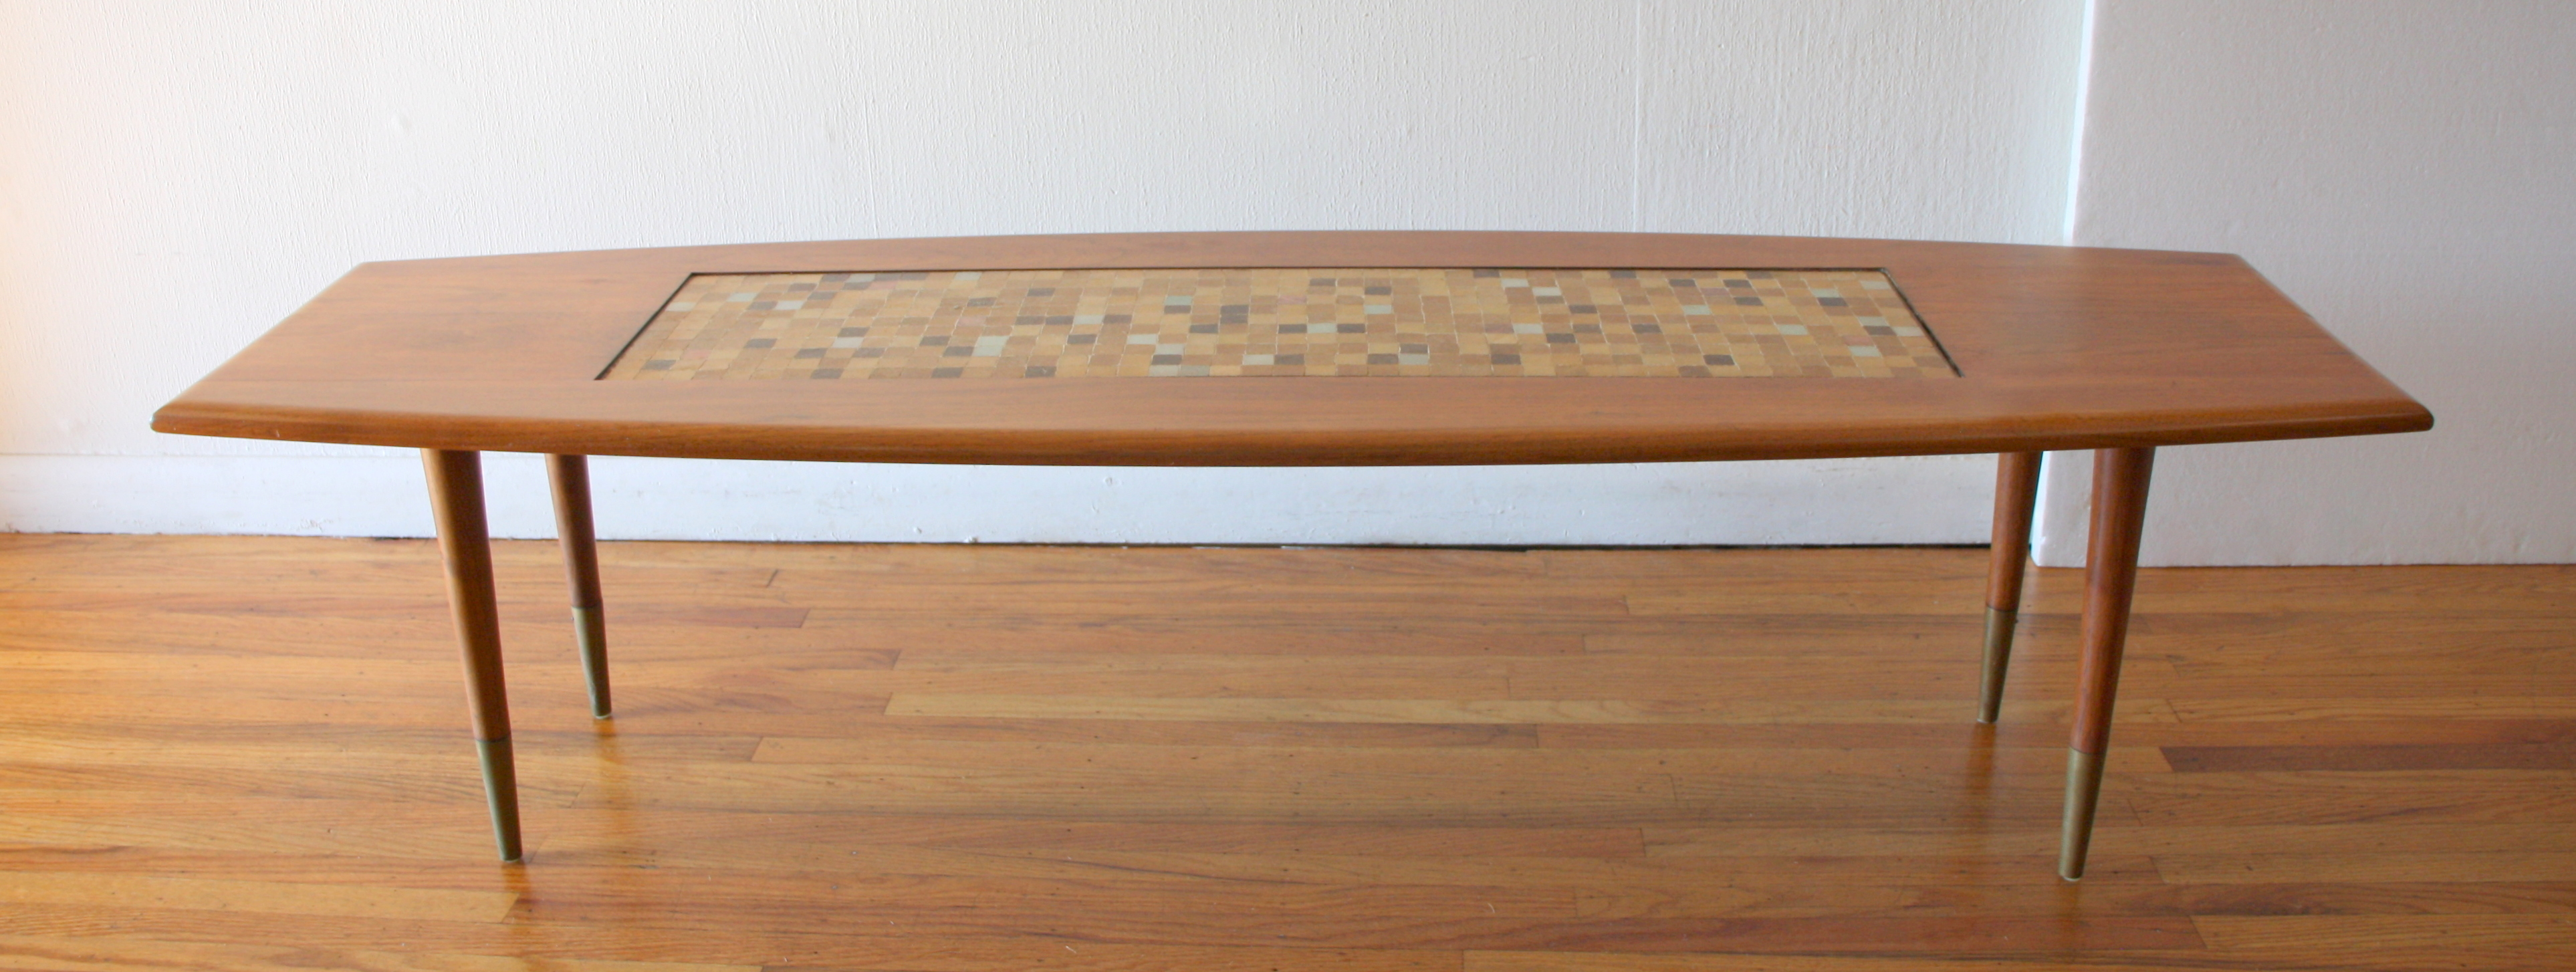 Mcm surfboard tile table 5